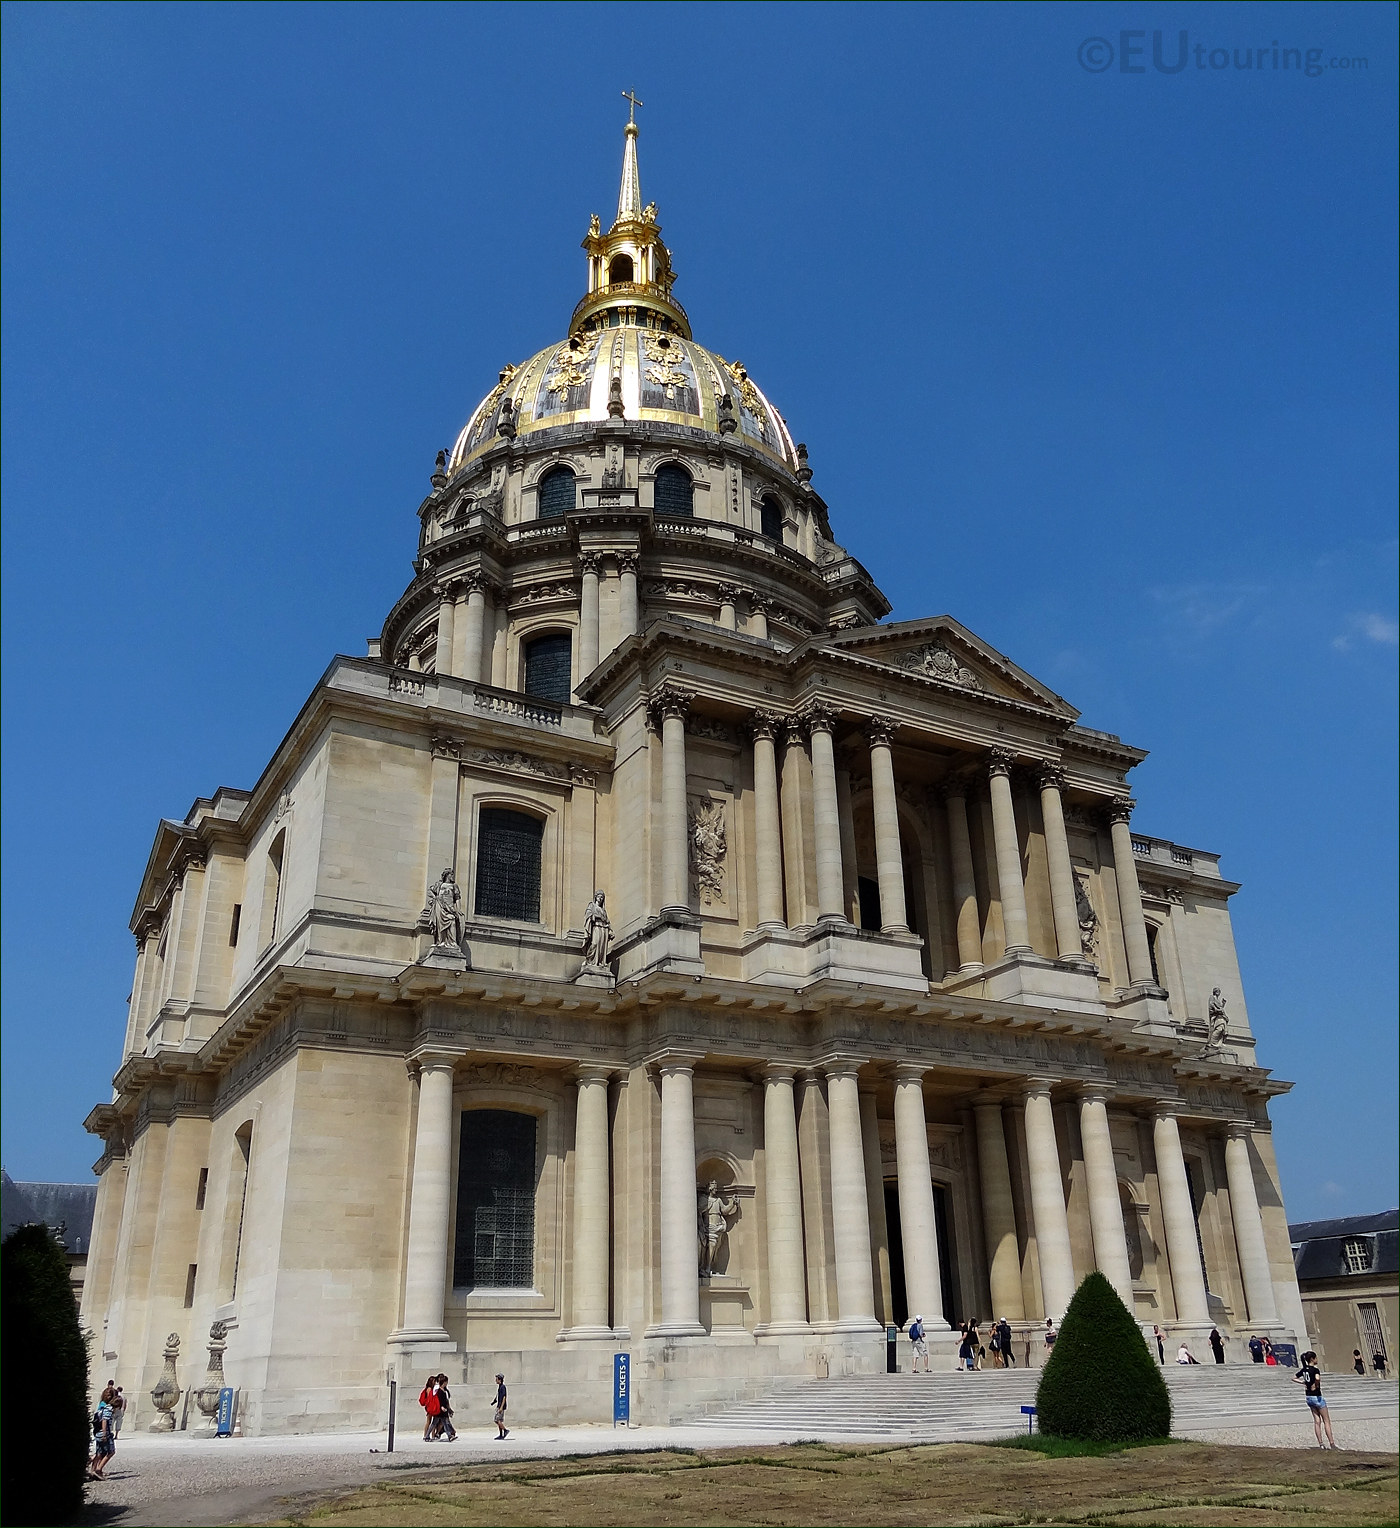 Hd Photo Of Eglise Du Dome At Hotel Les Invalides Page 8